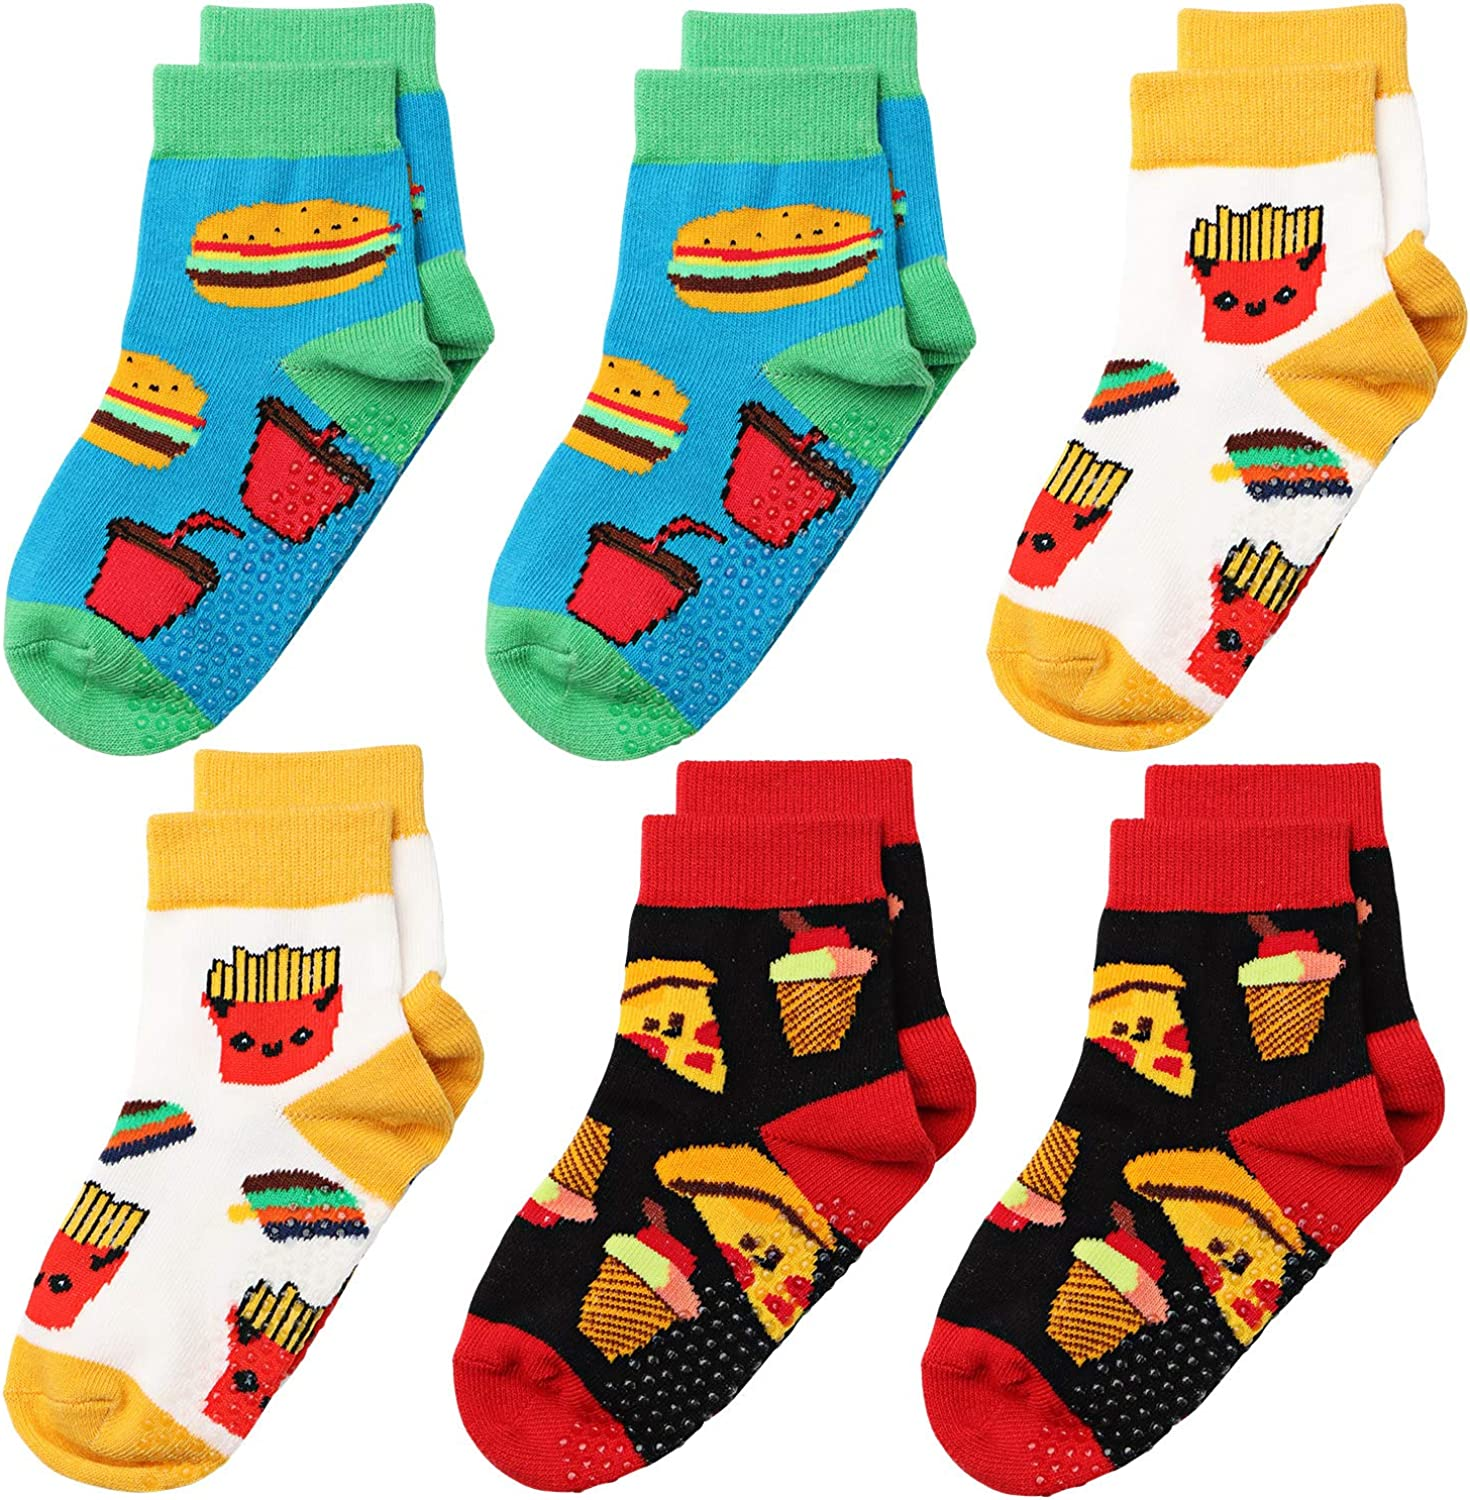 SQUANCHY 6 Pairs Infant Toddler Cotton Socks Non Skid for Kids Baby Boys Girls Grips Crew Cartoon Novelty 1-3/3-5/5-7